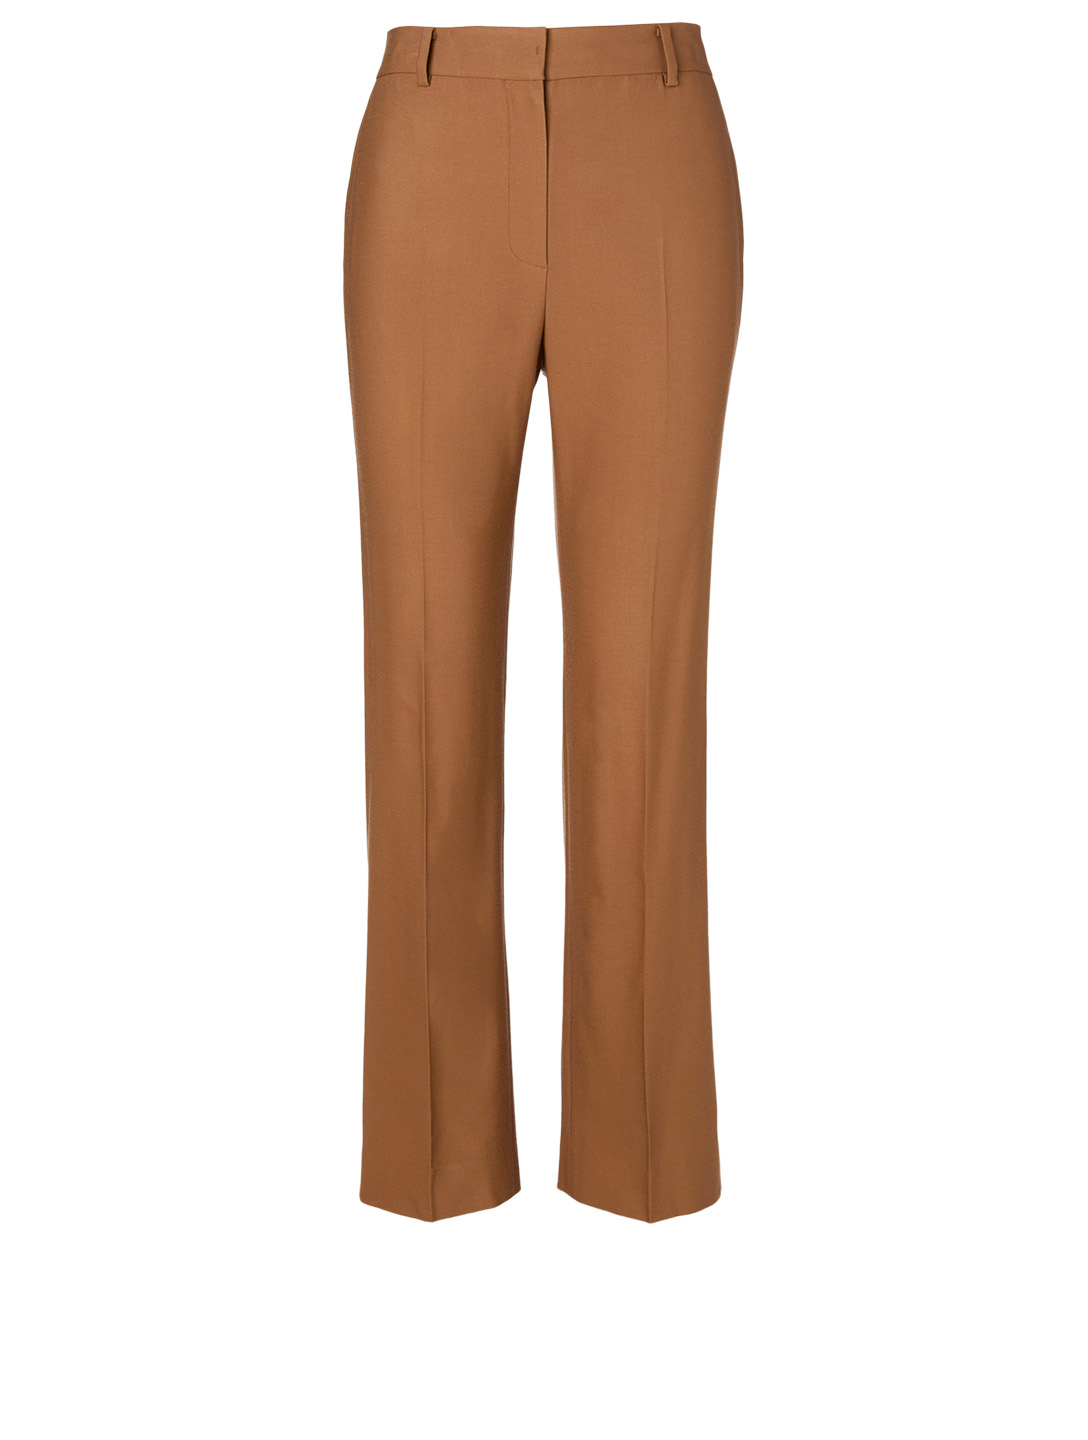 KUHO Wool-Blend Slim Pants Women's Neutral